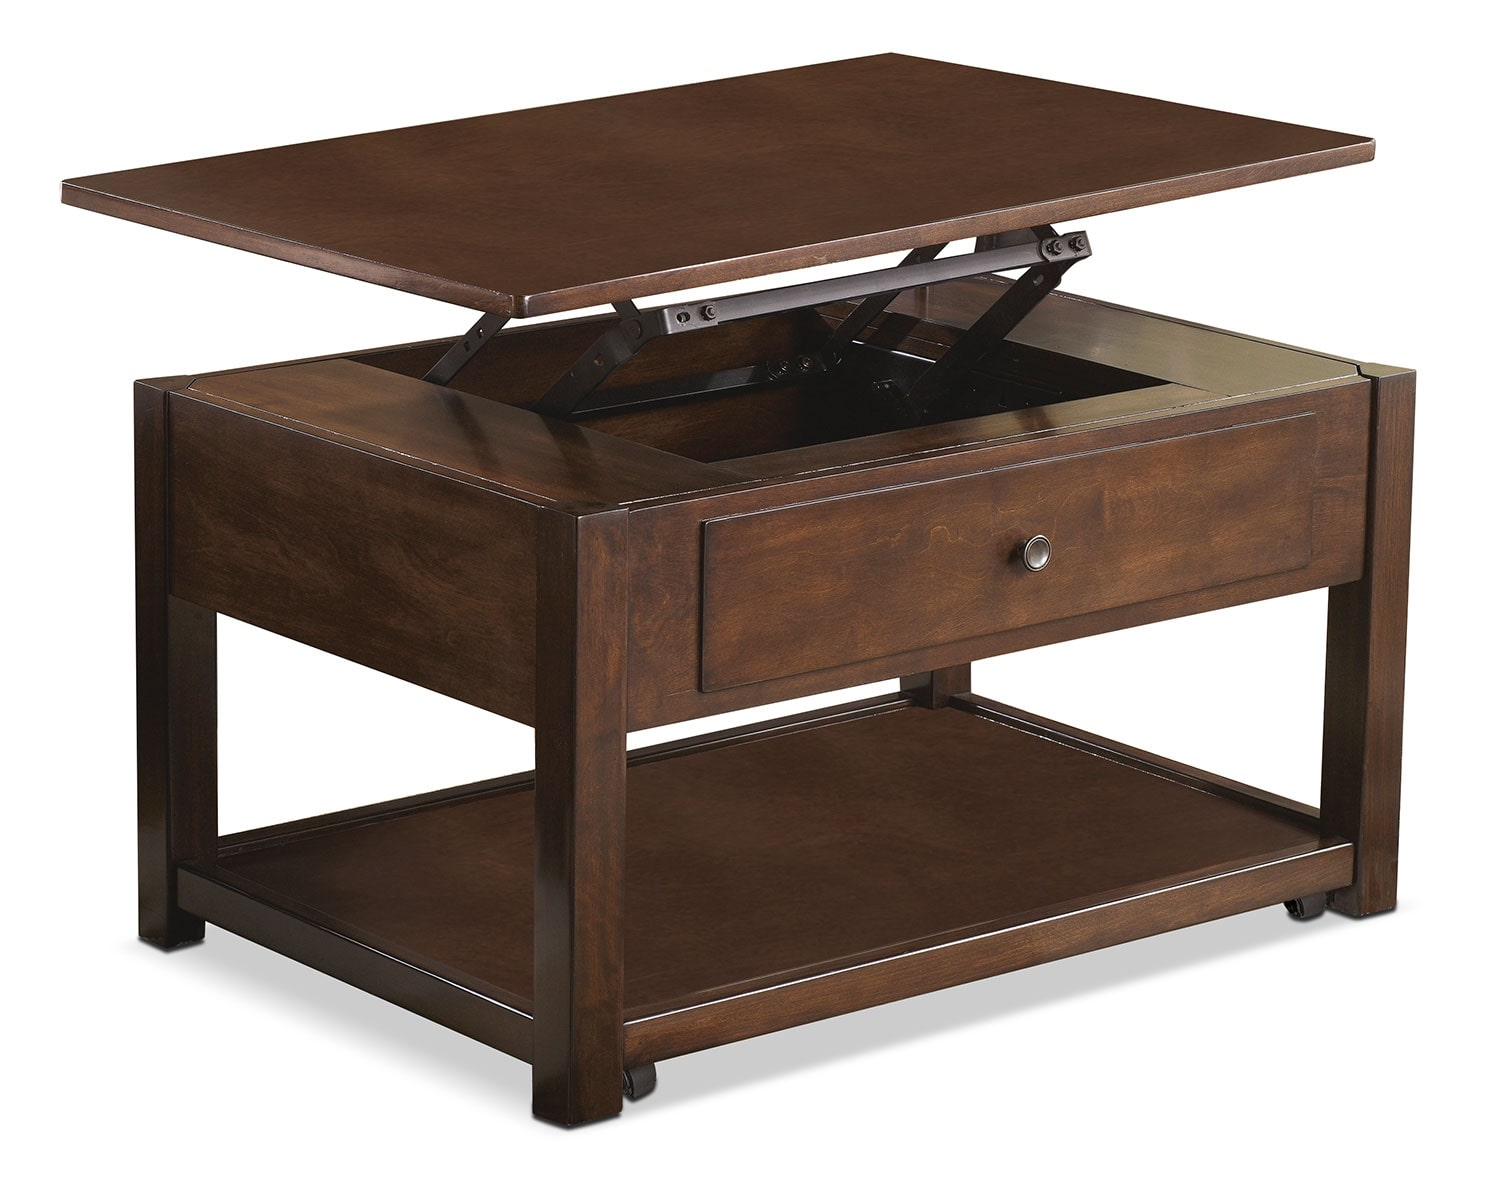 Accent and Occasional Furniture - Marion Coffee Table with Lift-Top and Casters